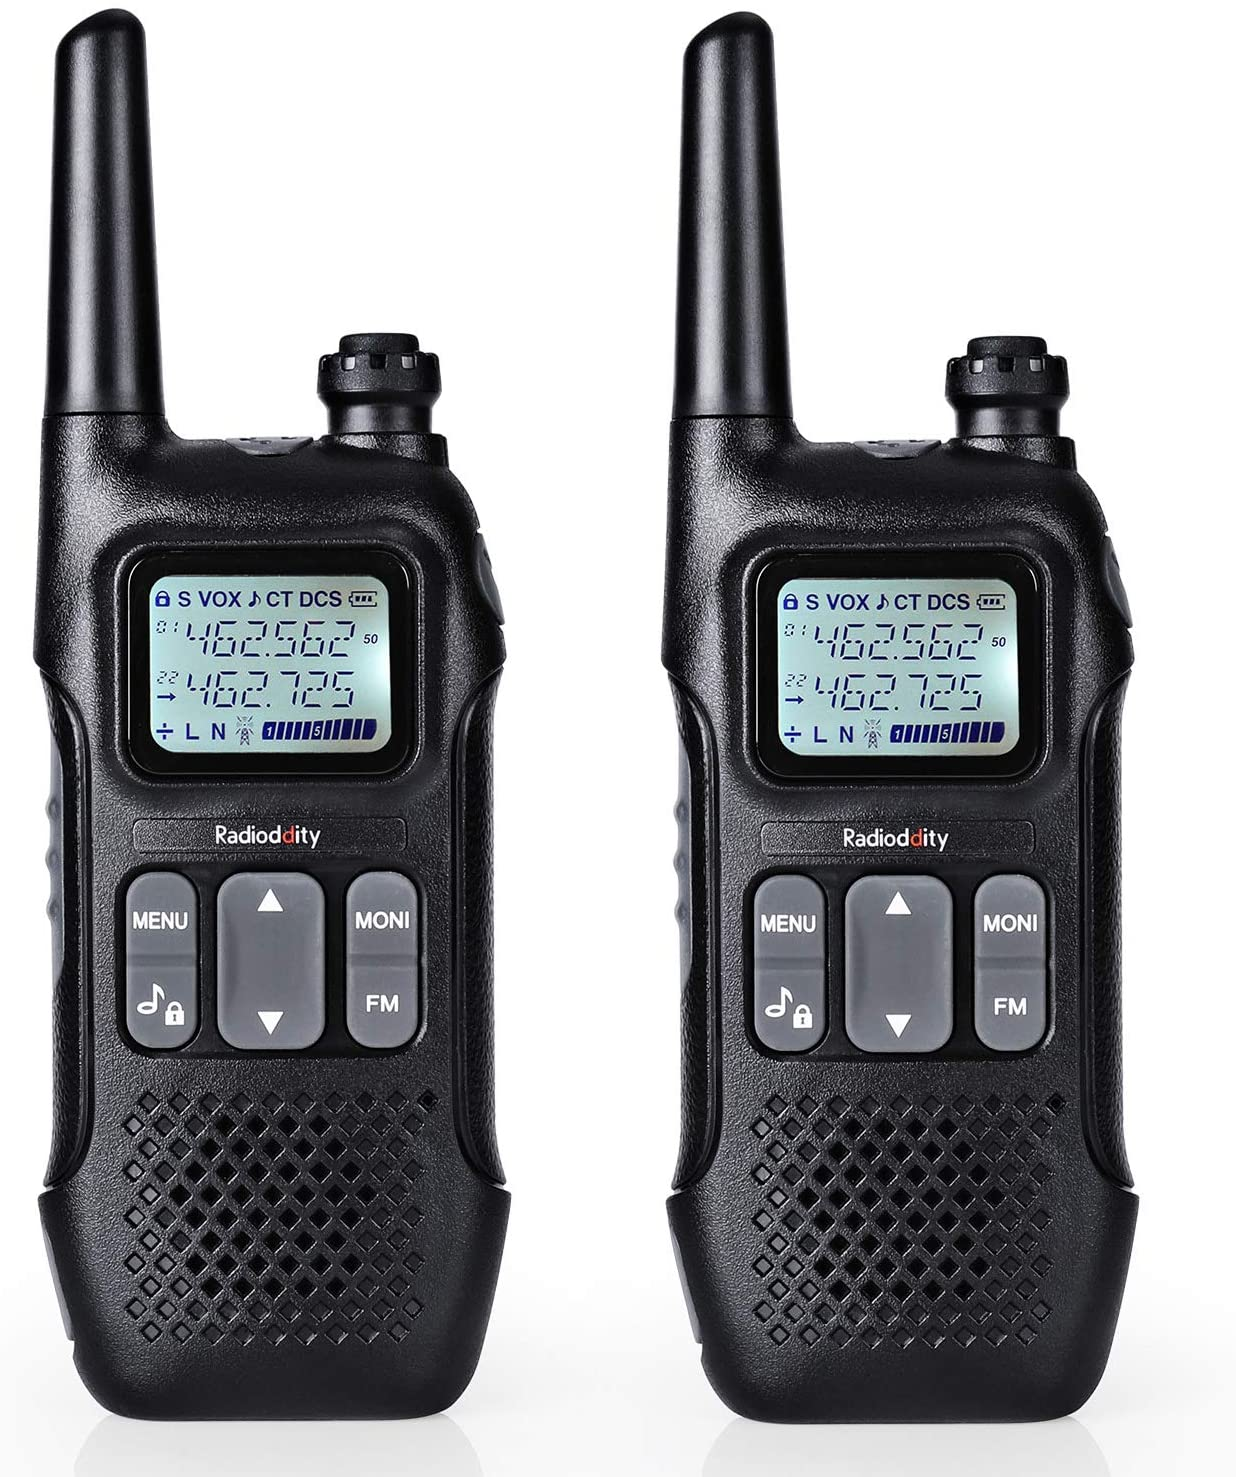 Radioddity FS-T1 FRS Two-Way Radio Long Range License-Free Walkie Talkies NOAA, 22 Channels 154 Privacy Codes with FM, Earpiece, USB Charging, 2 Pack